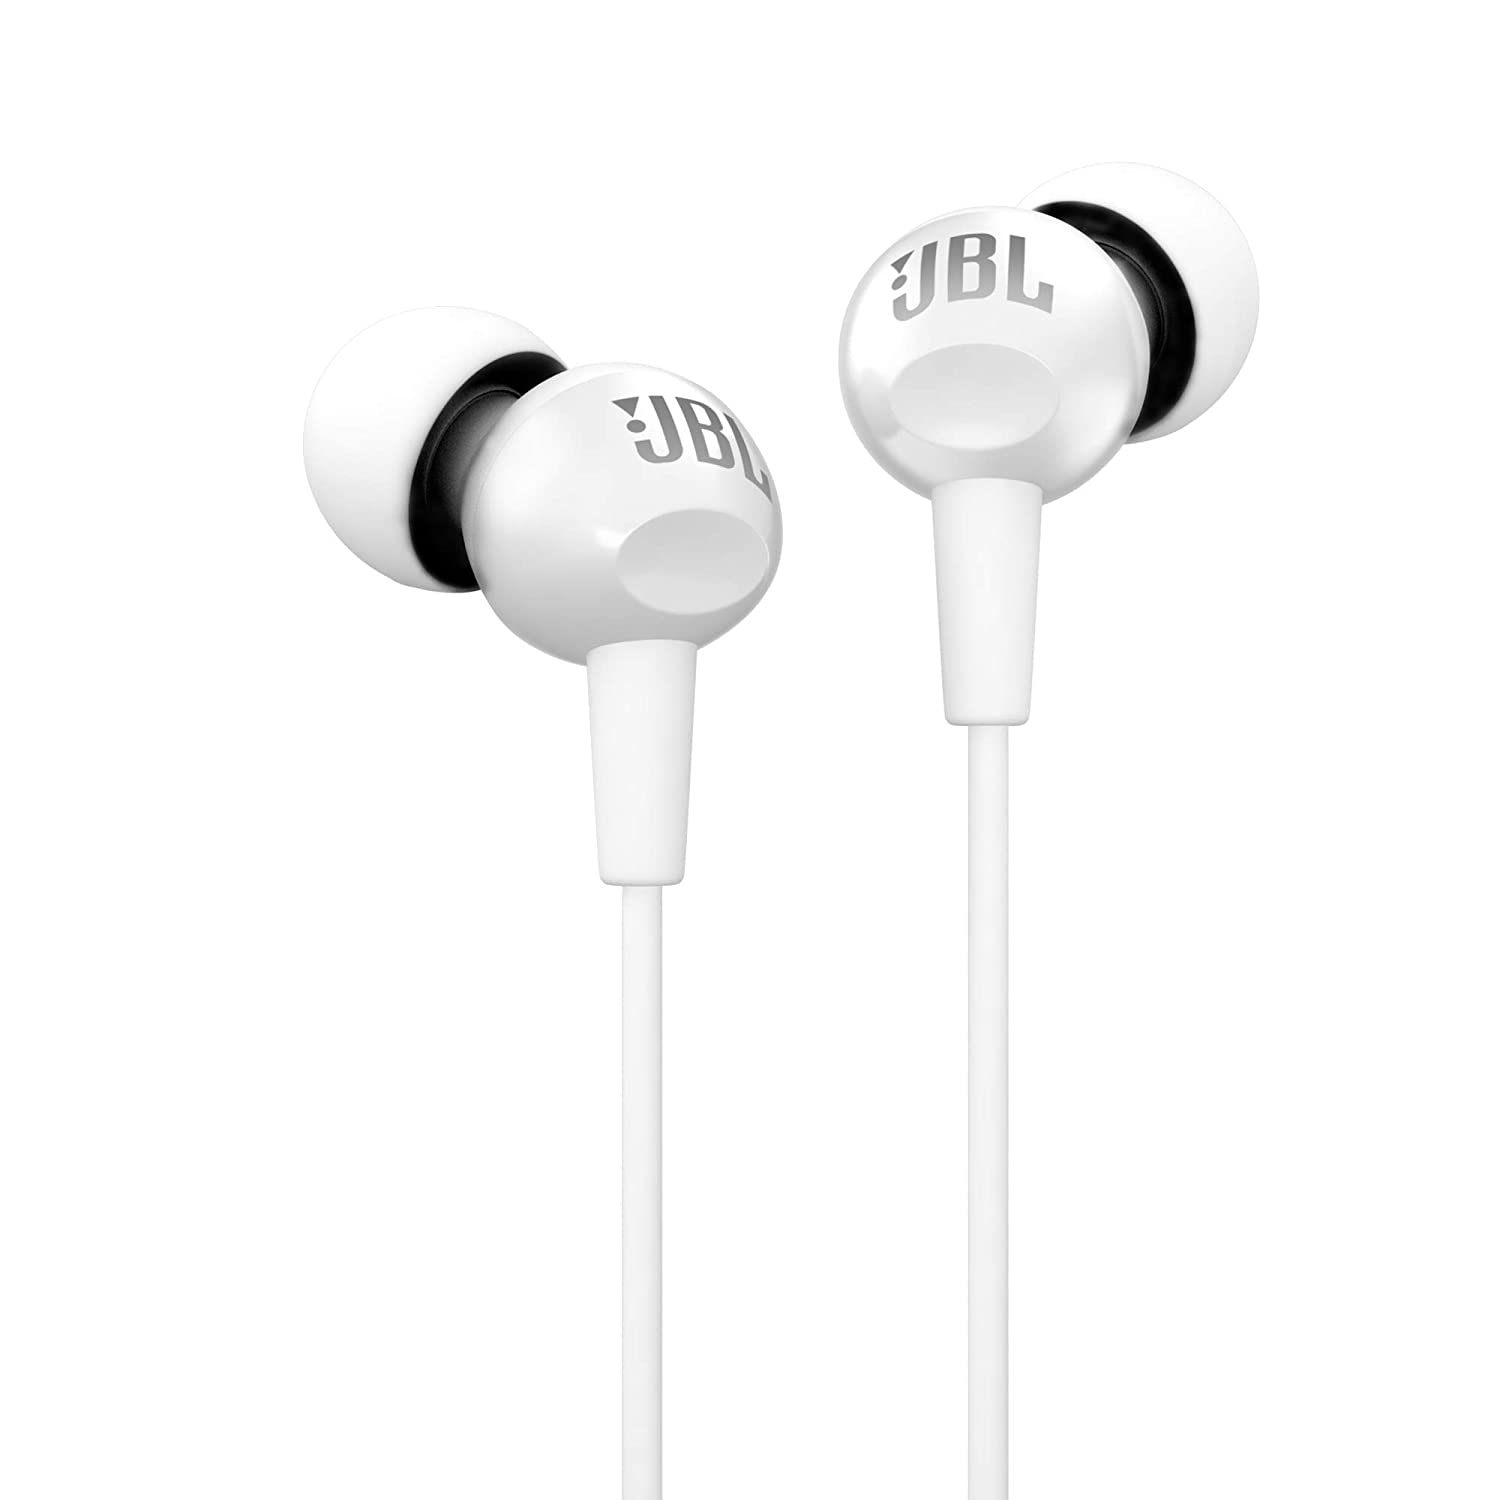 b7baa28c84e JBL C100SI In-Ear Headphones with Mic (White): Buy JBL C100SI In-Ear  Headphones with Mic (White) Online at Low Price in India - Amazon.in